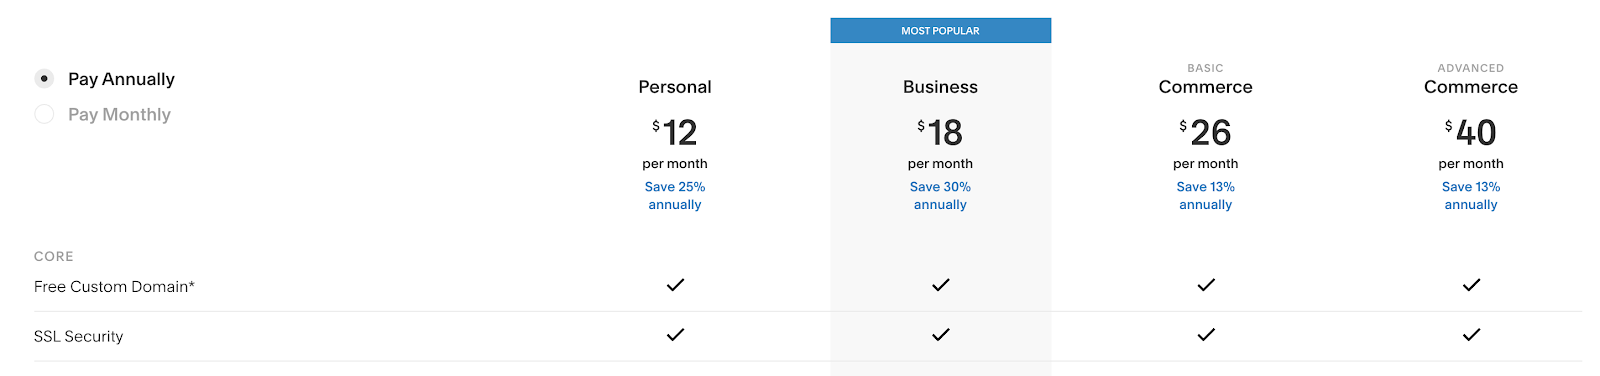 Squarespace eCommerce Pricing Plans (Table Screenshot)